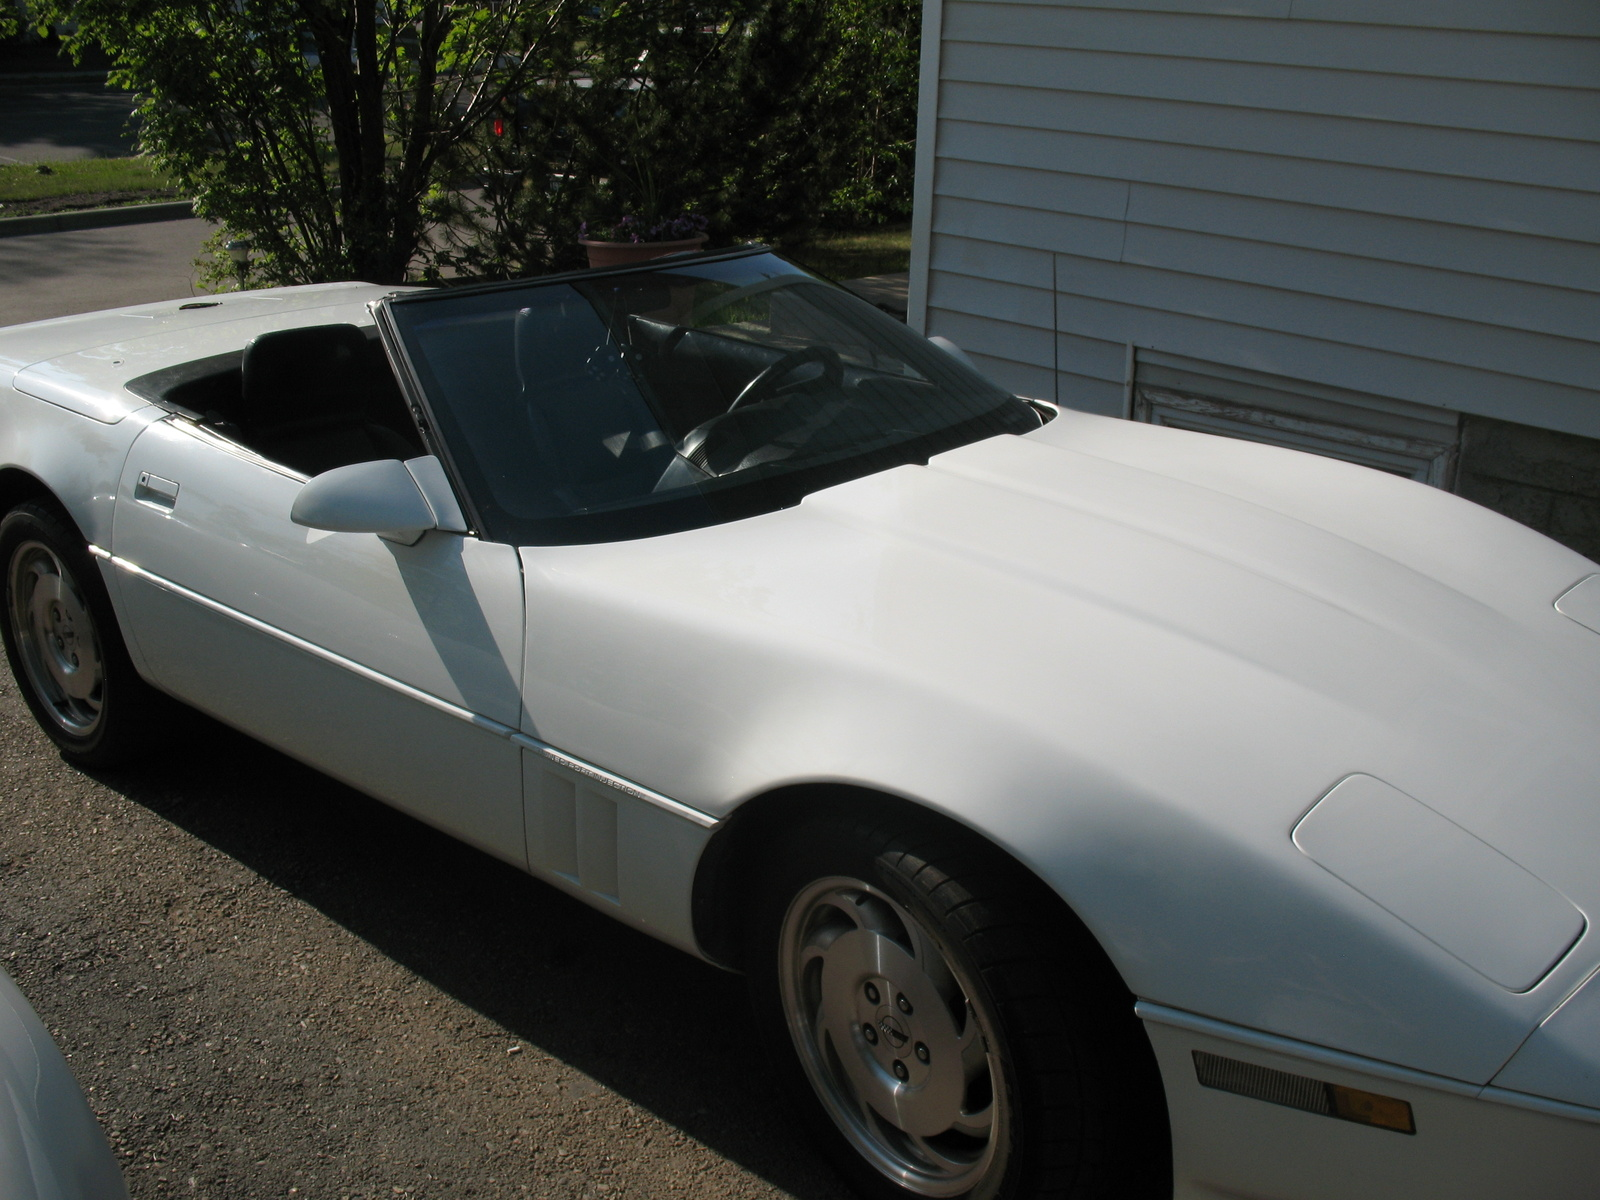 1991 Chevrolet Corvette Convertible, 1991 Chevrolet Corvette 2 Dr STD Convertible picture, exterior